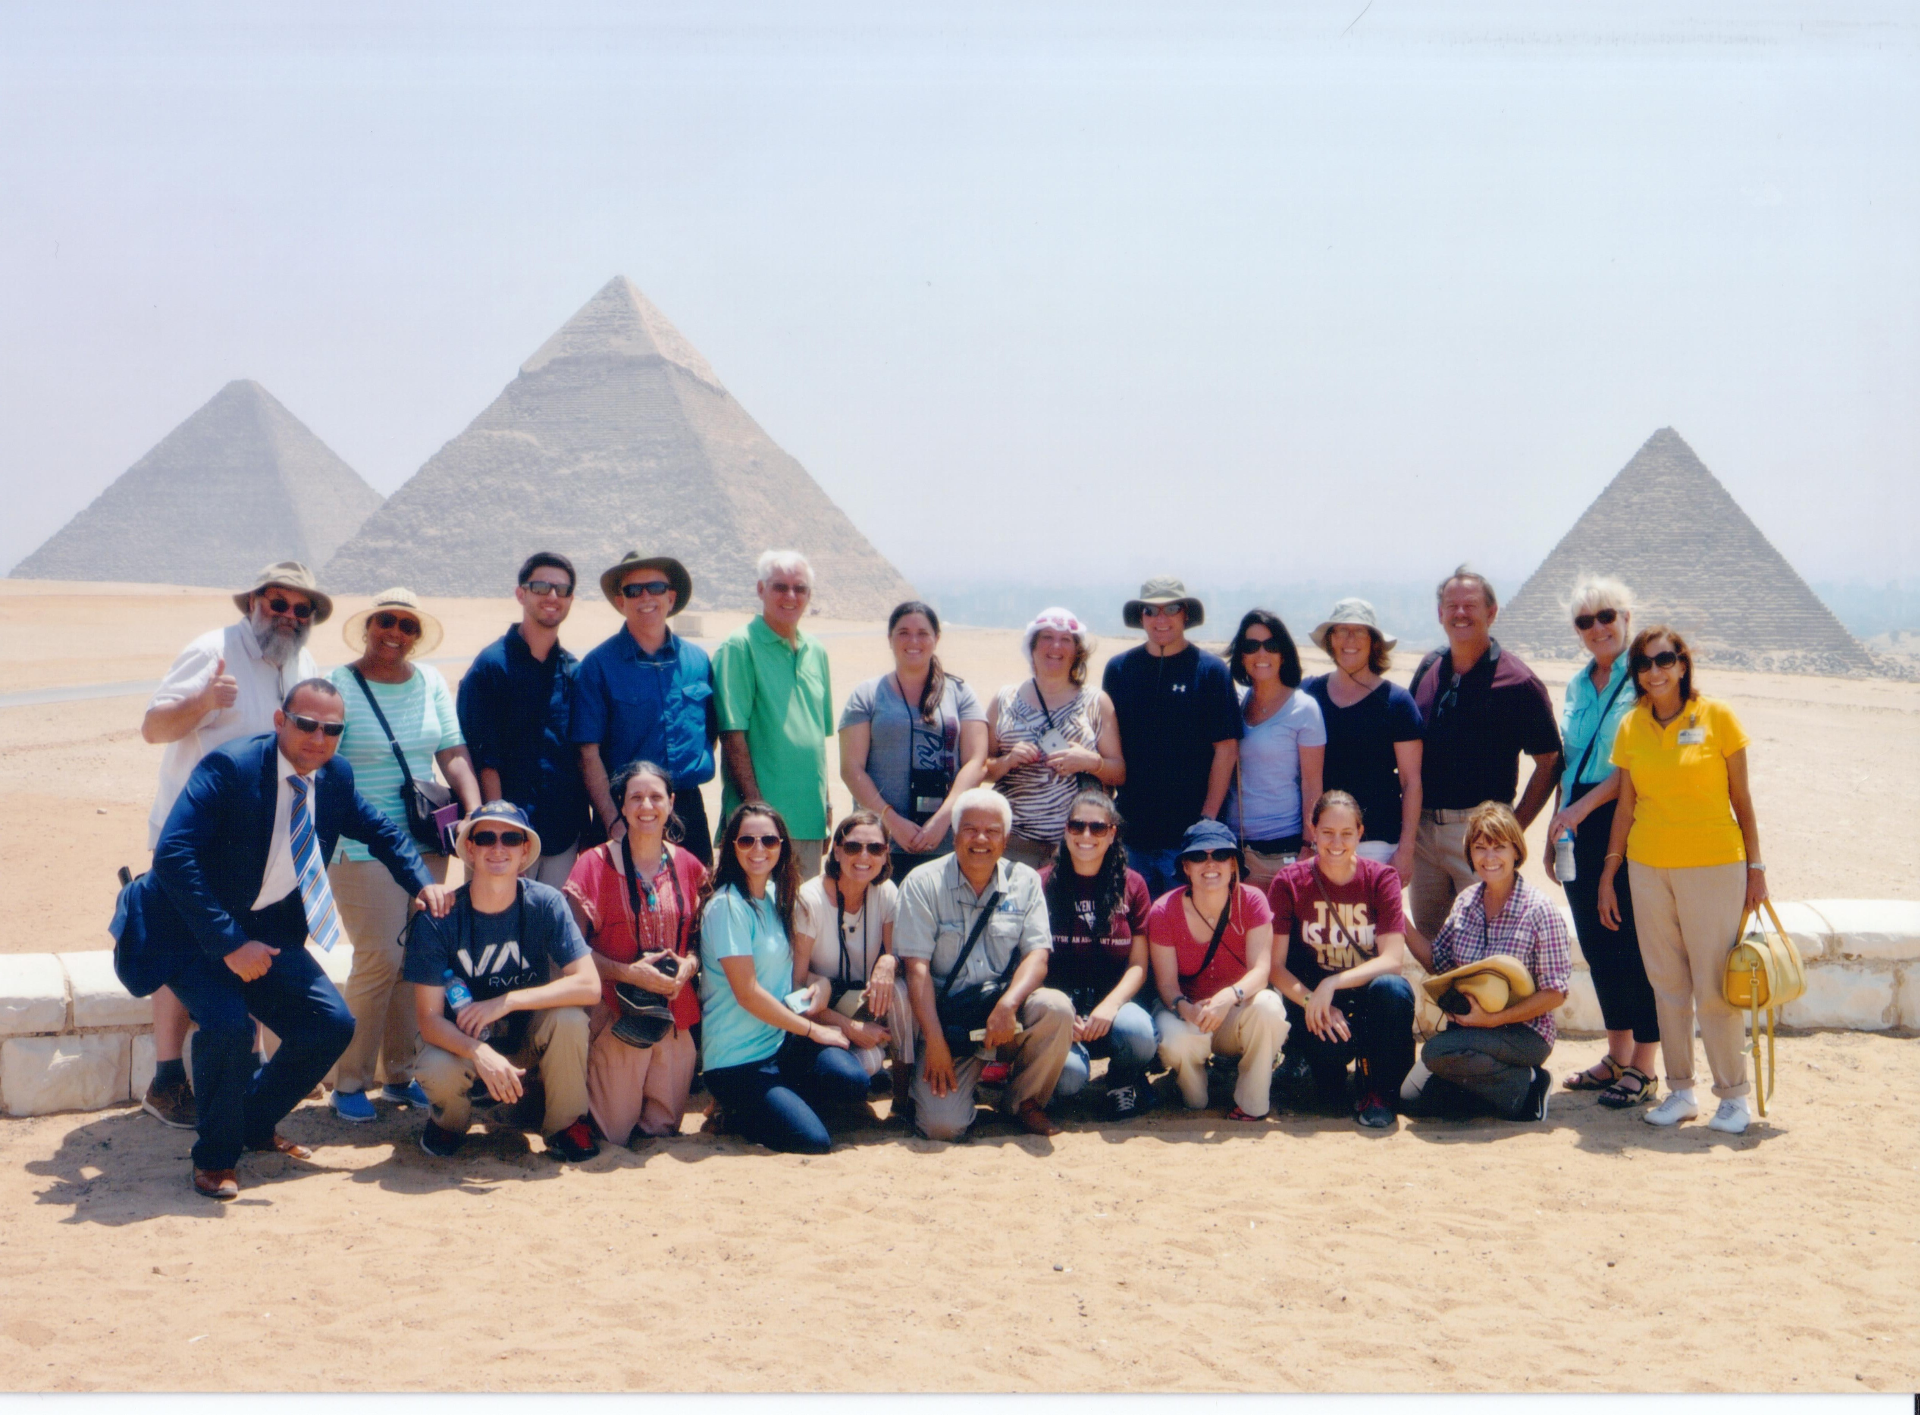 HLO Tours group trip in Egypt